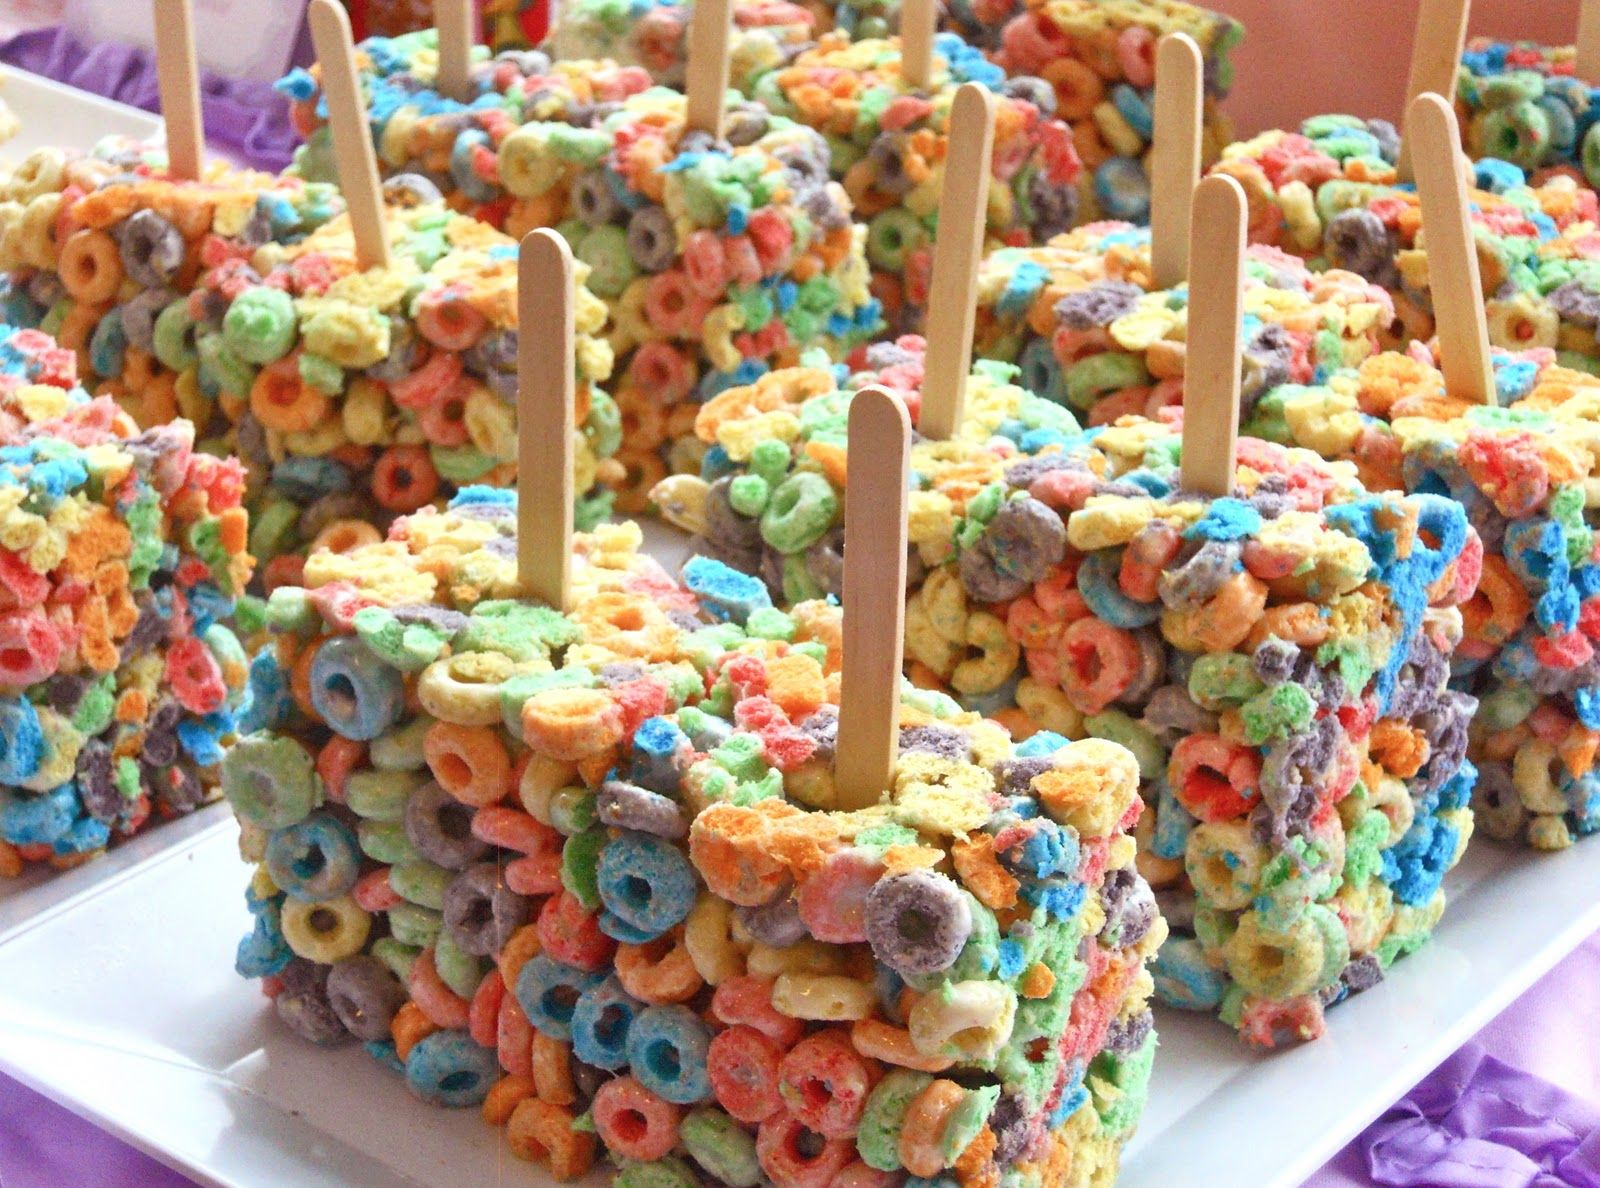 Fruit Loops Rice Krispie Treats 6 Cups Of Fruit Loops 10